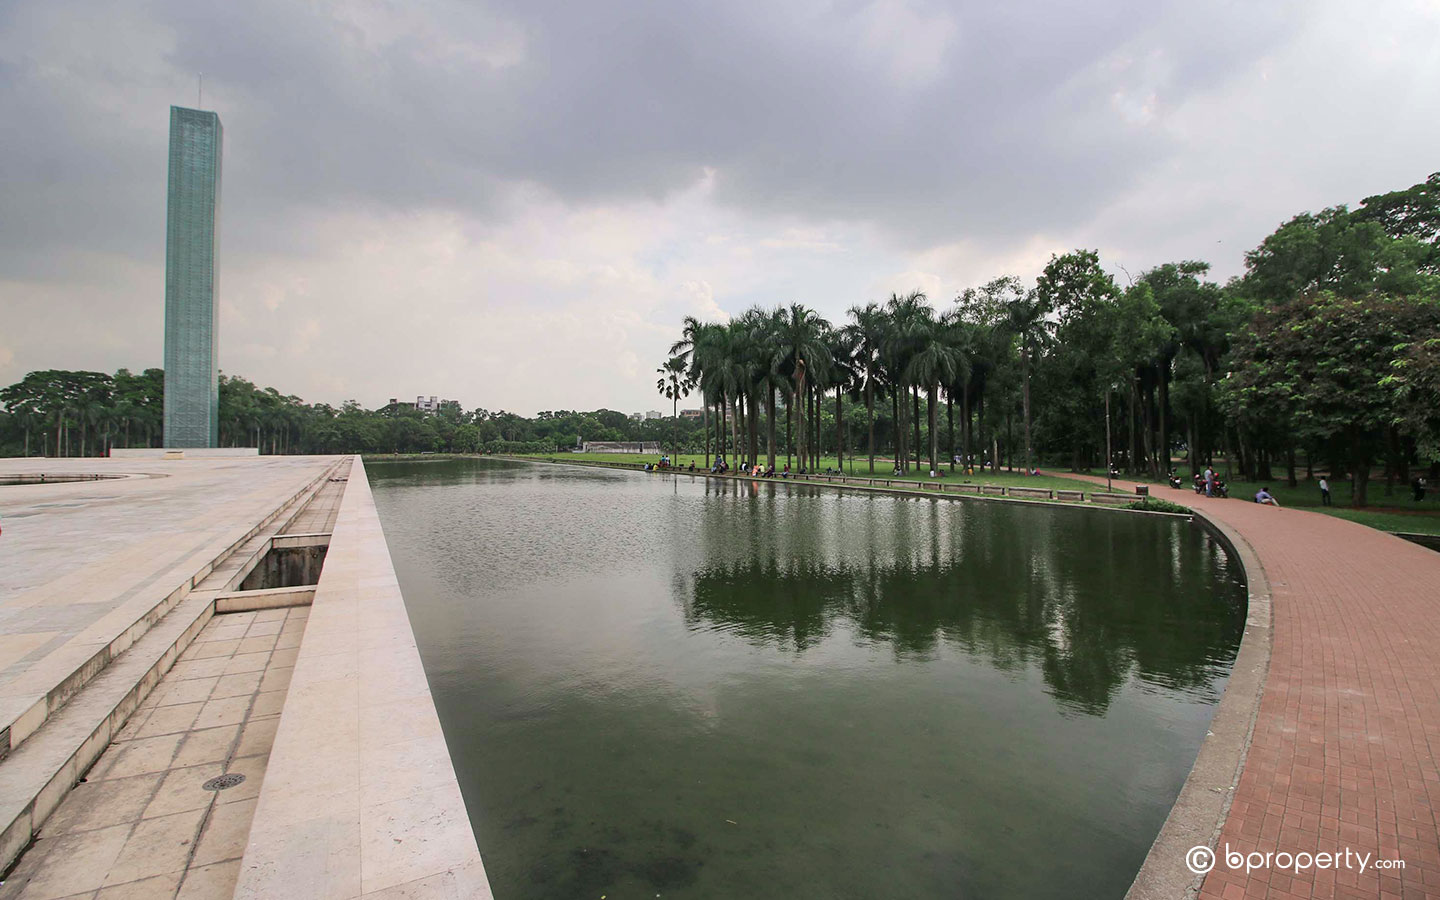 The park is one of the most popular parks to visit in Dhaka